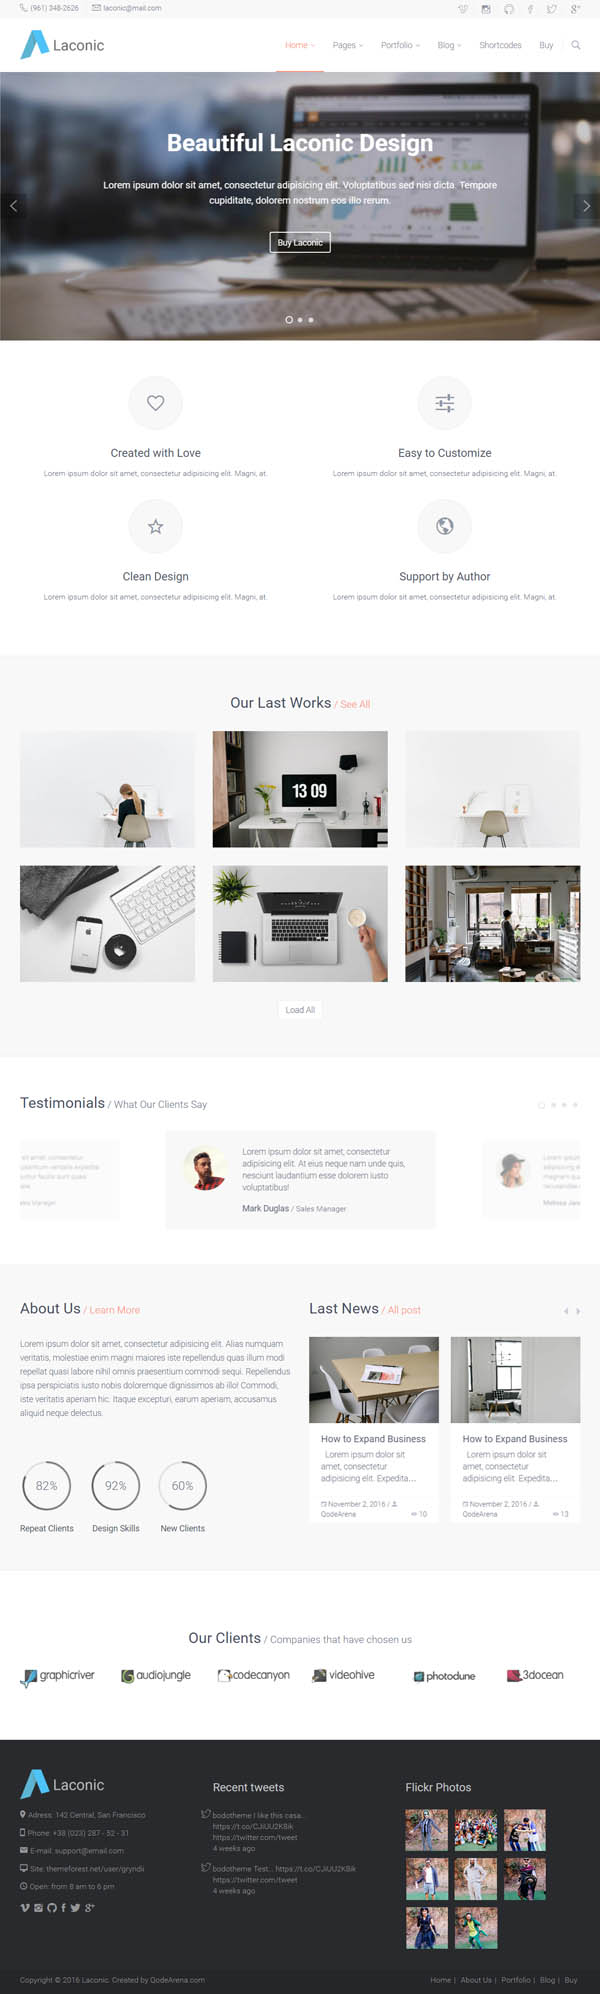 New WordPress Themes with Modern Design and Features | Wordpress ...